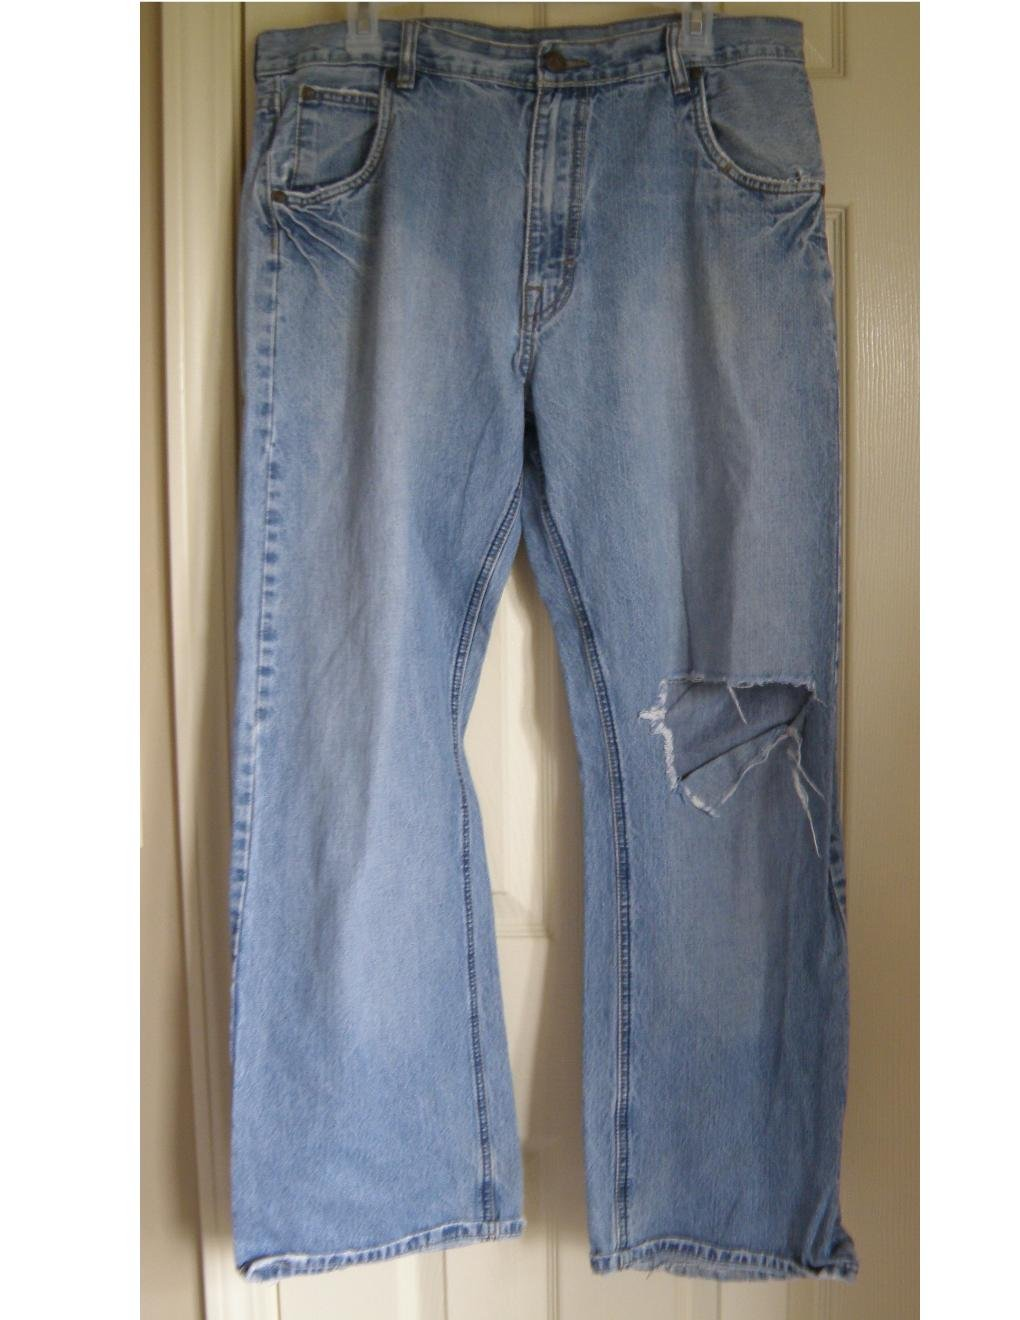 Destroyed Mens Loose Fit Jeans Light Wash Knee Rip 34 x 30 OTB One Tough Brand